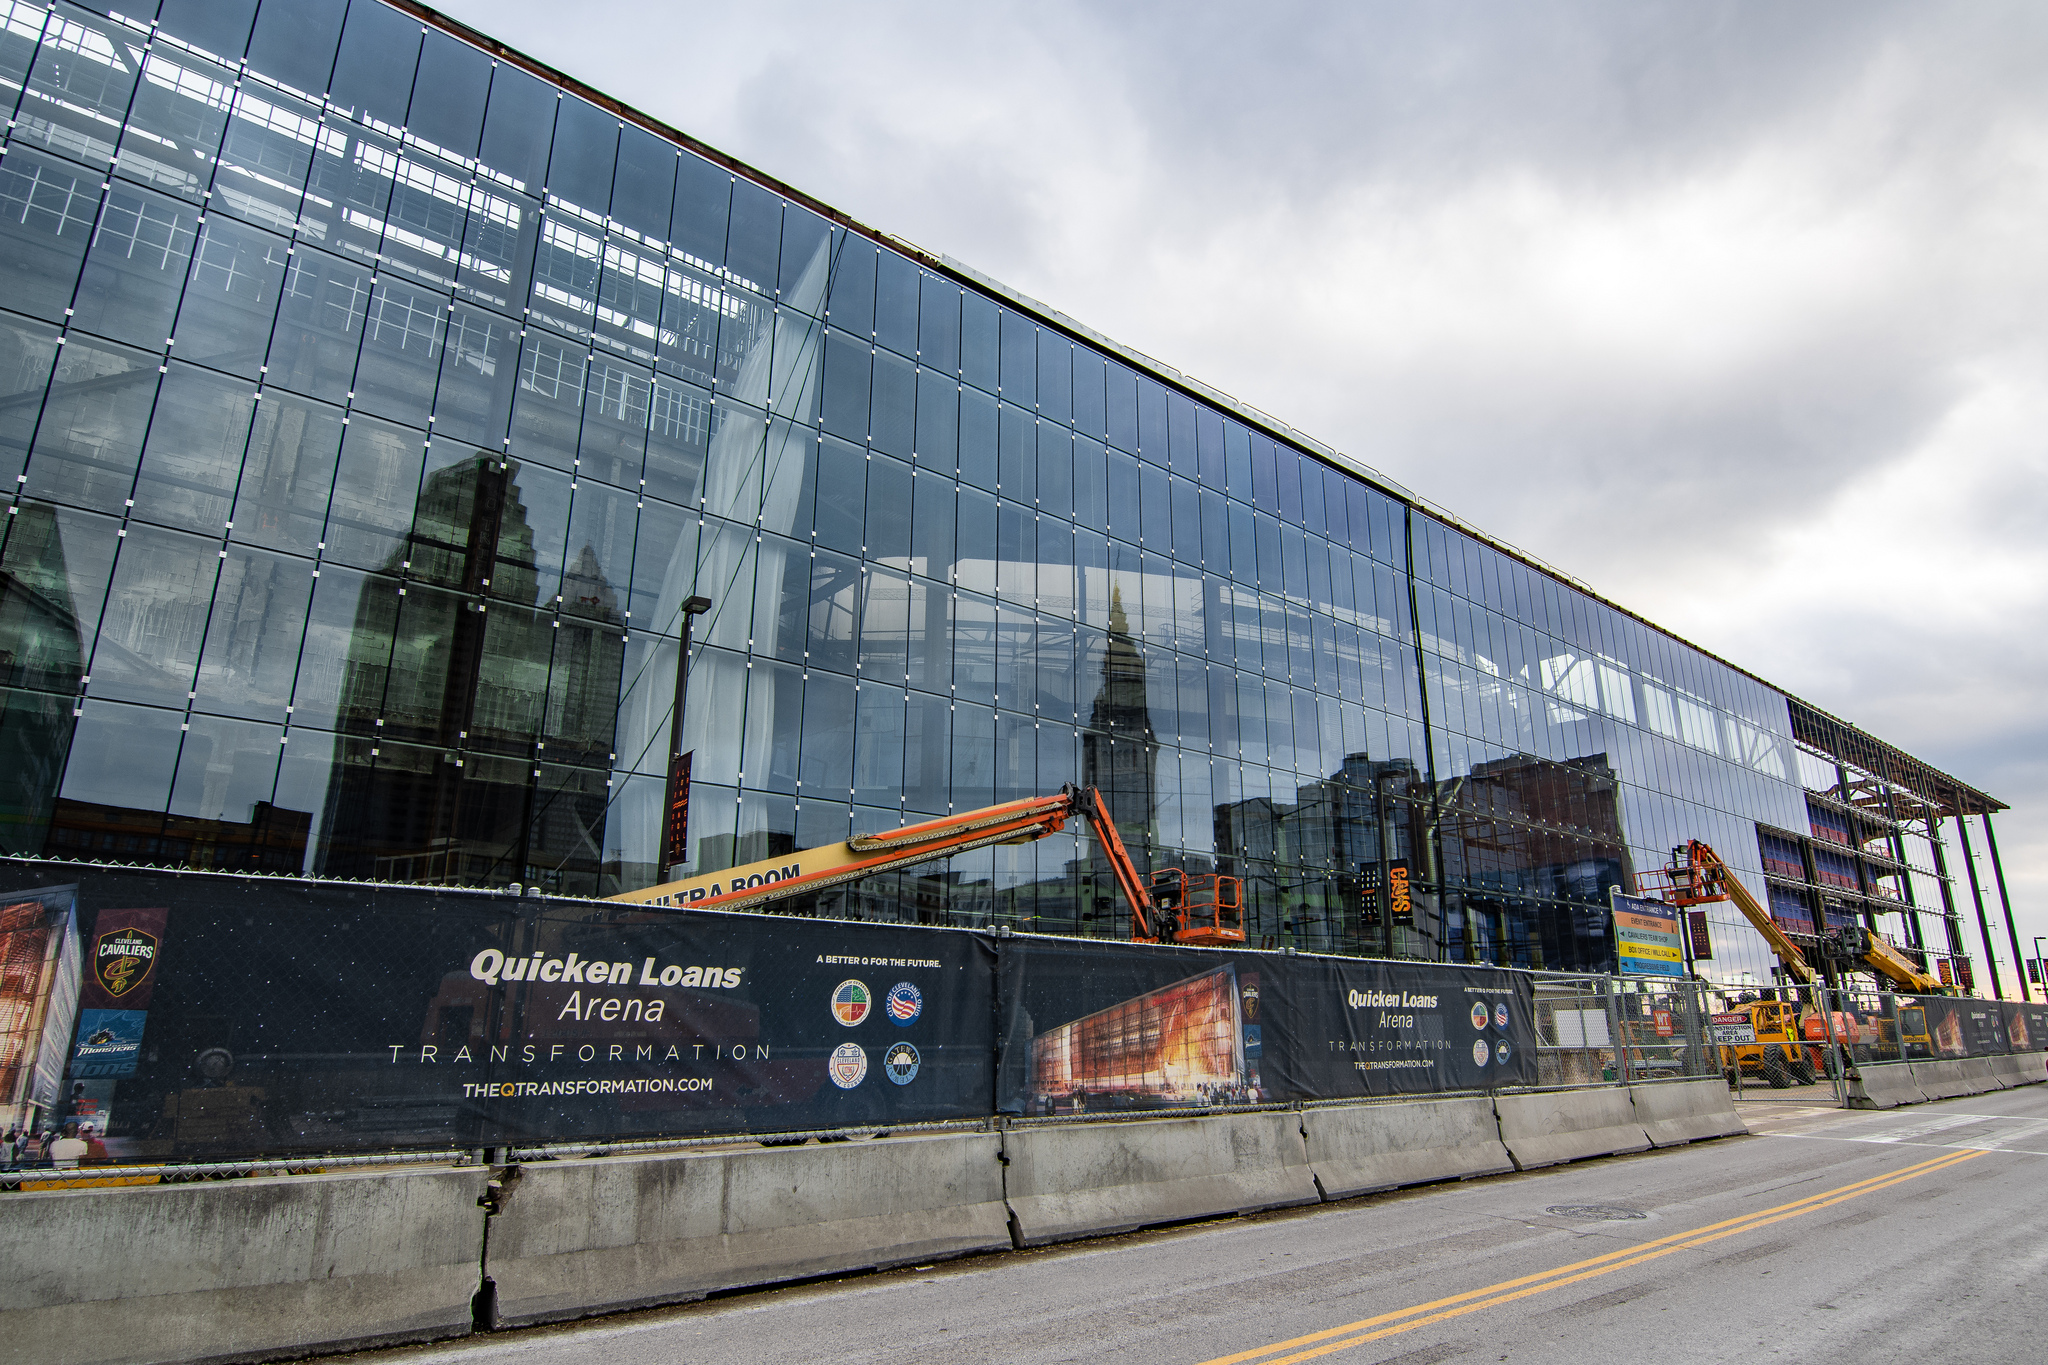 Cleveland's Quicken Loans Arena to Finish Renovation in the